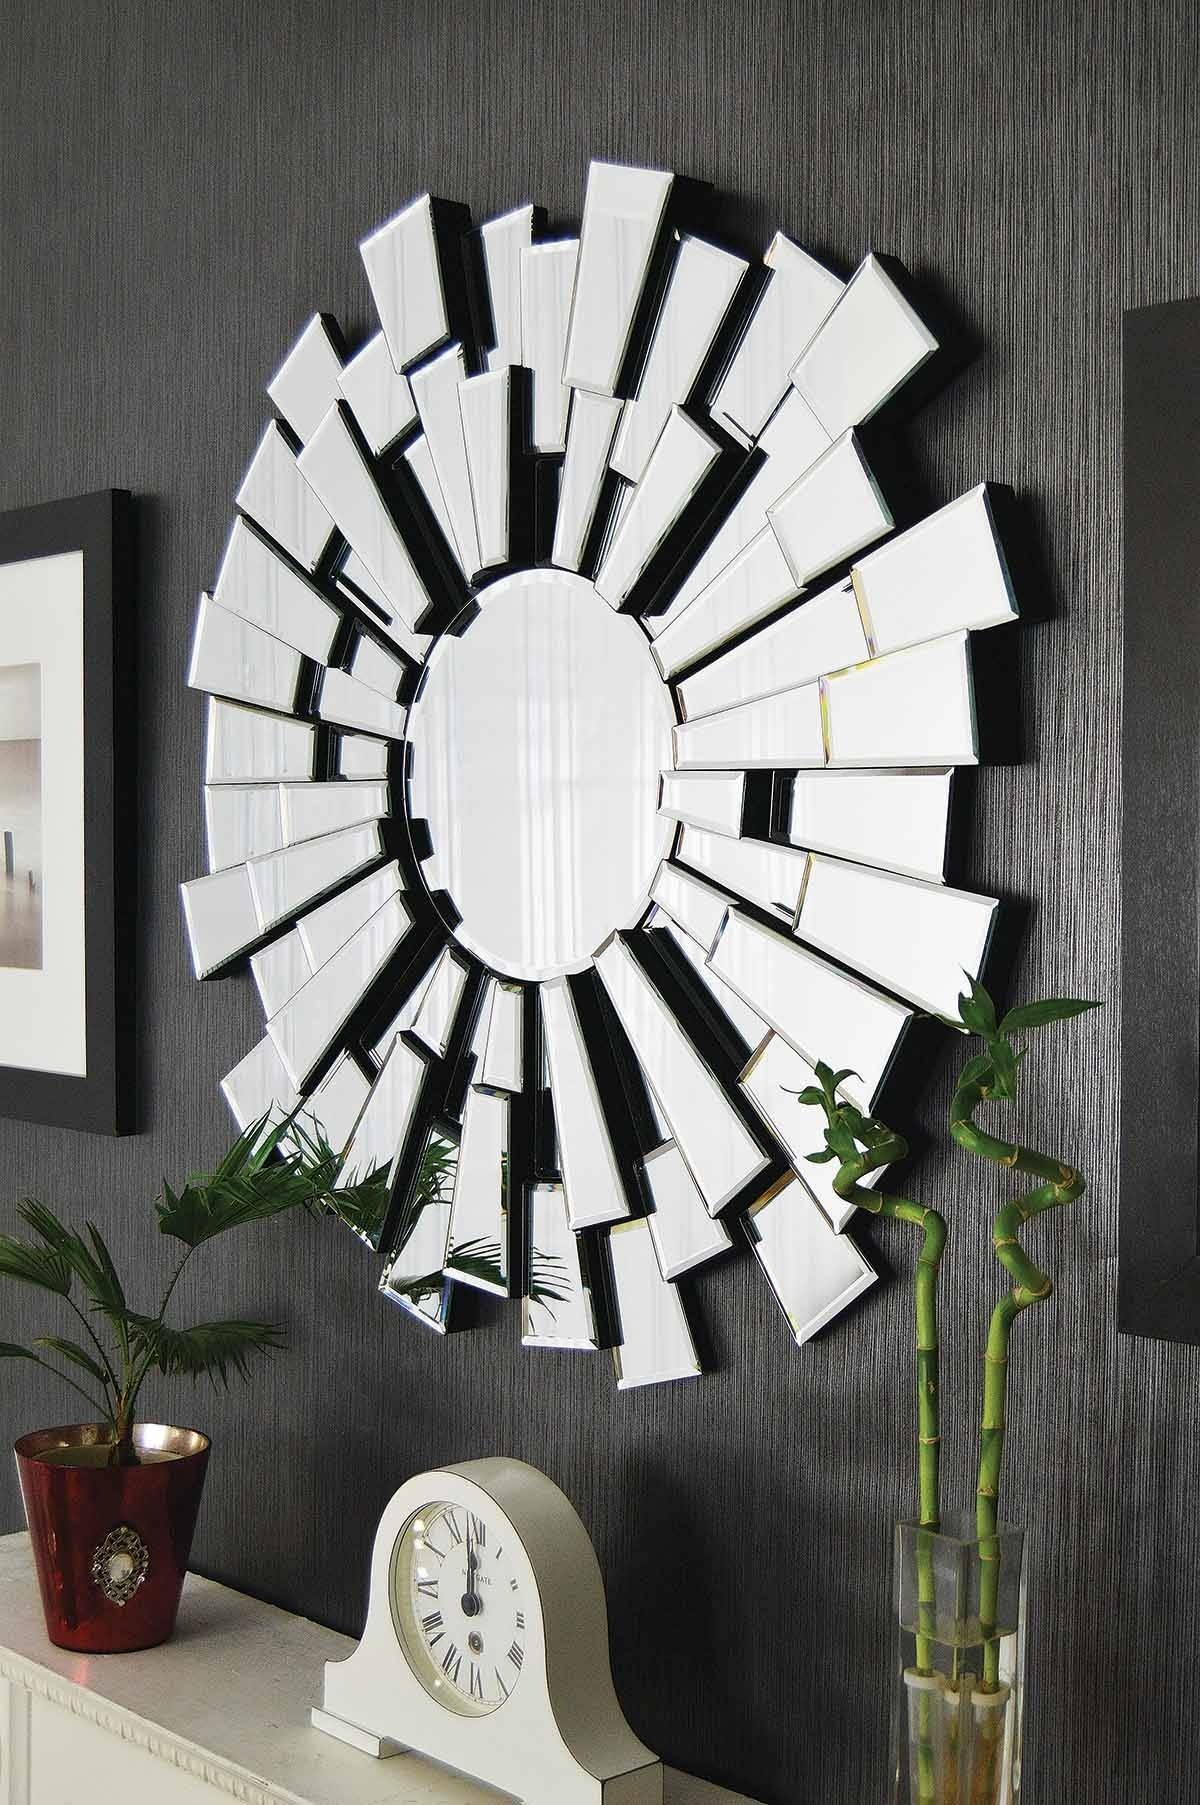 Large Circular Wall Mirrors 109 Stunning Decor With Dazzling Round In Large Circular Mirrors (View 18 of 25)